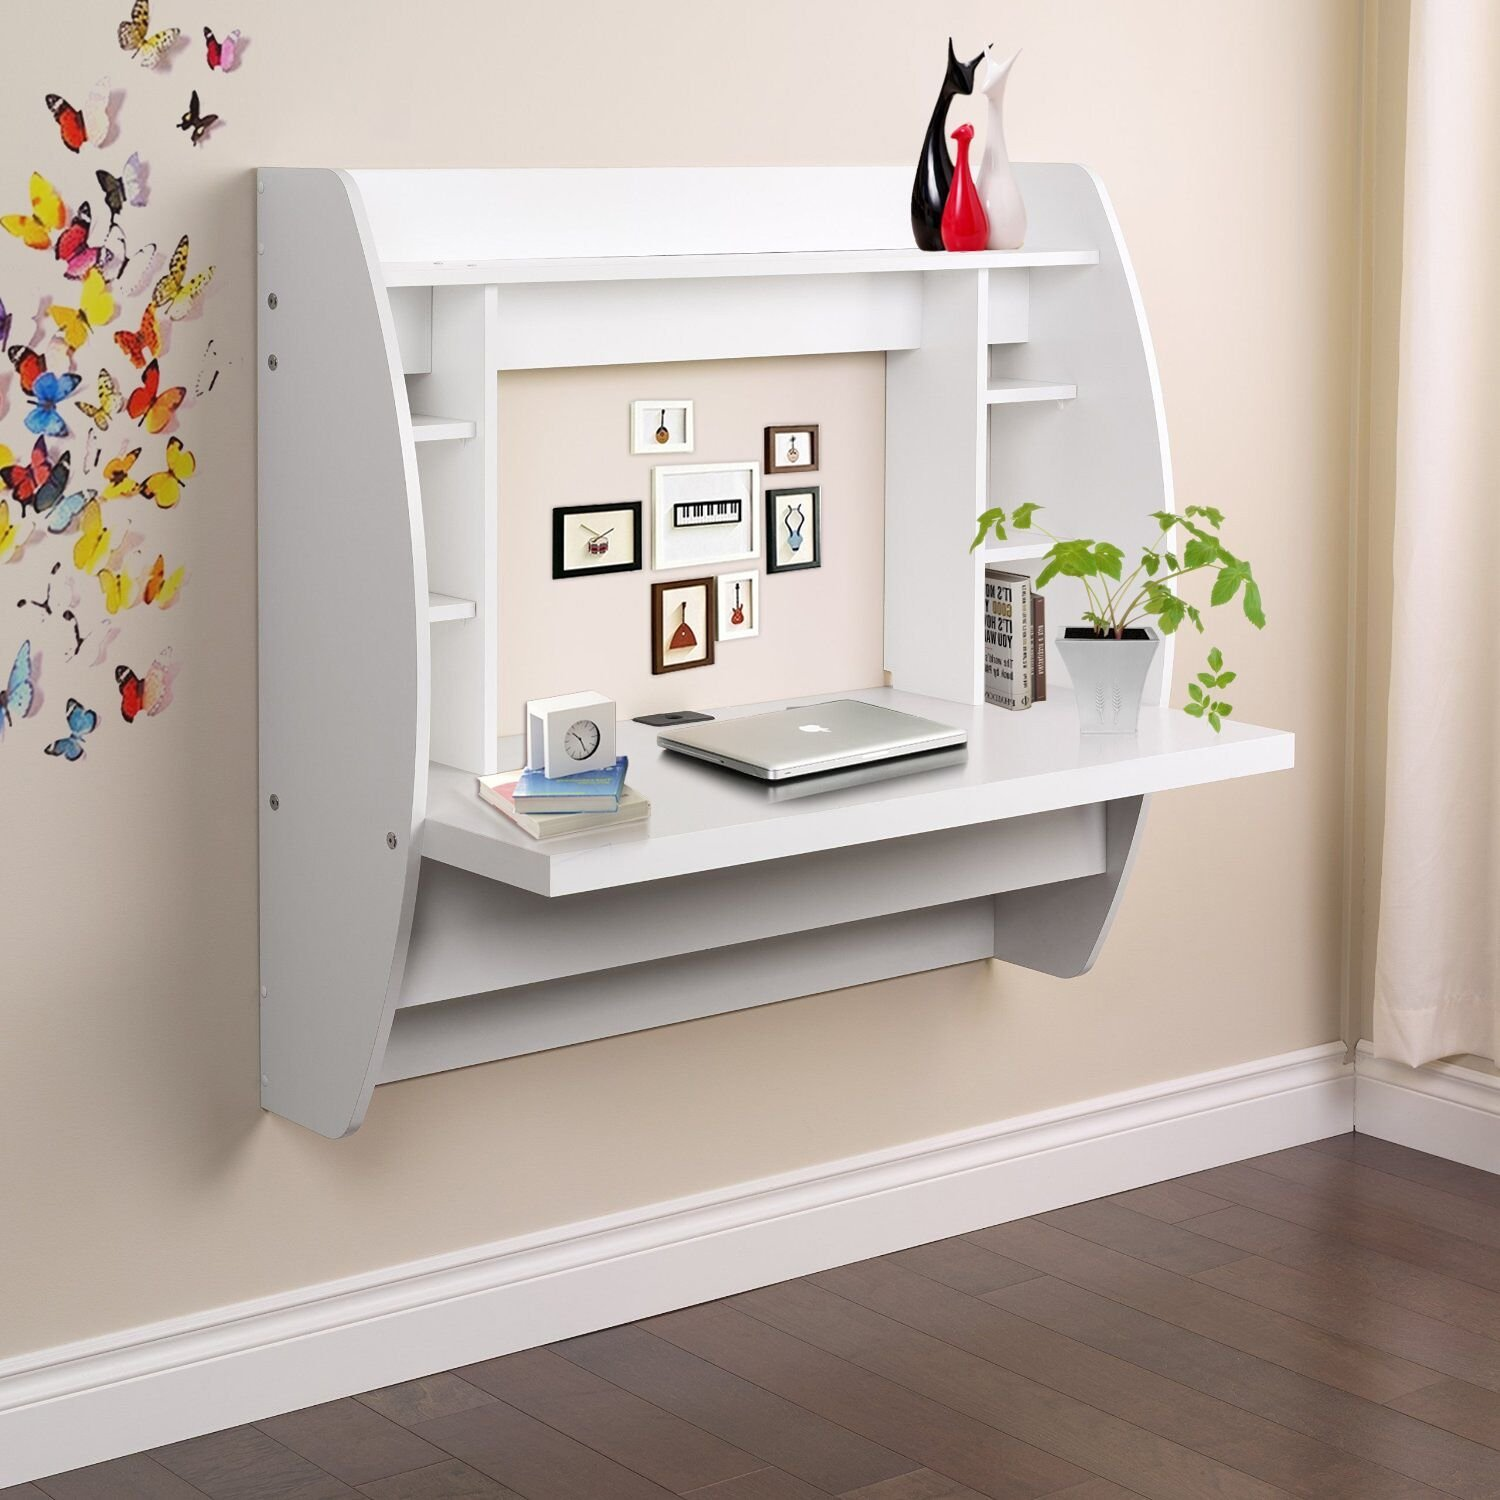 office wall desk. Get Quotations · Unionline Office Computer Desk Floating Wall Mount With Storage Shelf Space Saving Home U